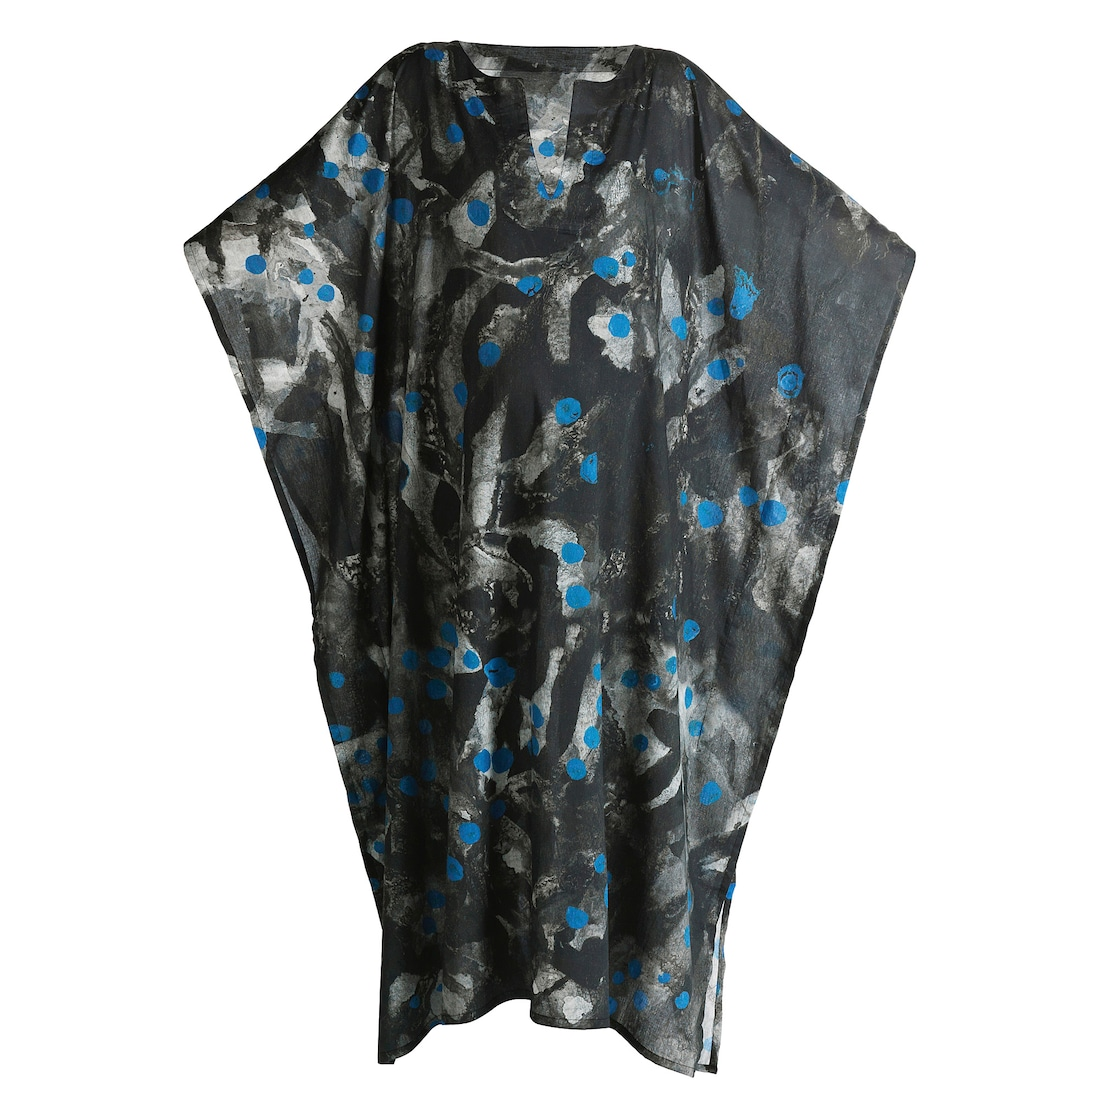 IKEA Collaboration Annanstans Kaftan